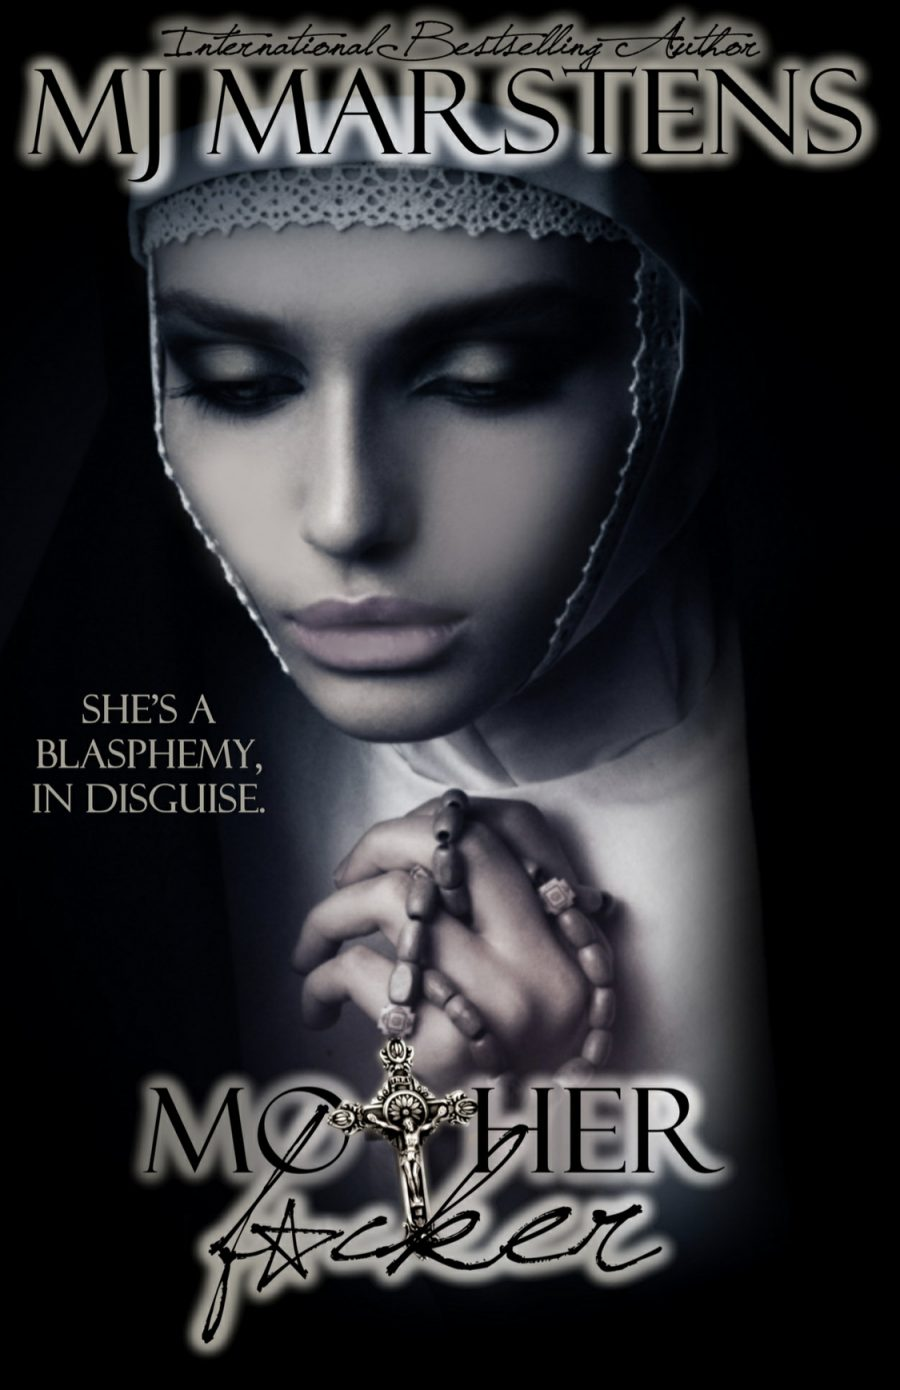 Motherf*cker by MJ Marstens - A Book Review #BookReview #Hilarious #Taboo #HEA #FastBurn #RH #WhyChoose #Naughty #StandAlone #KindleUnlimited #KU